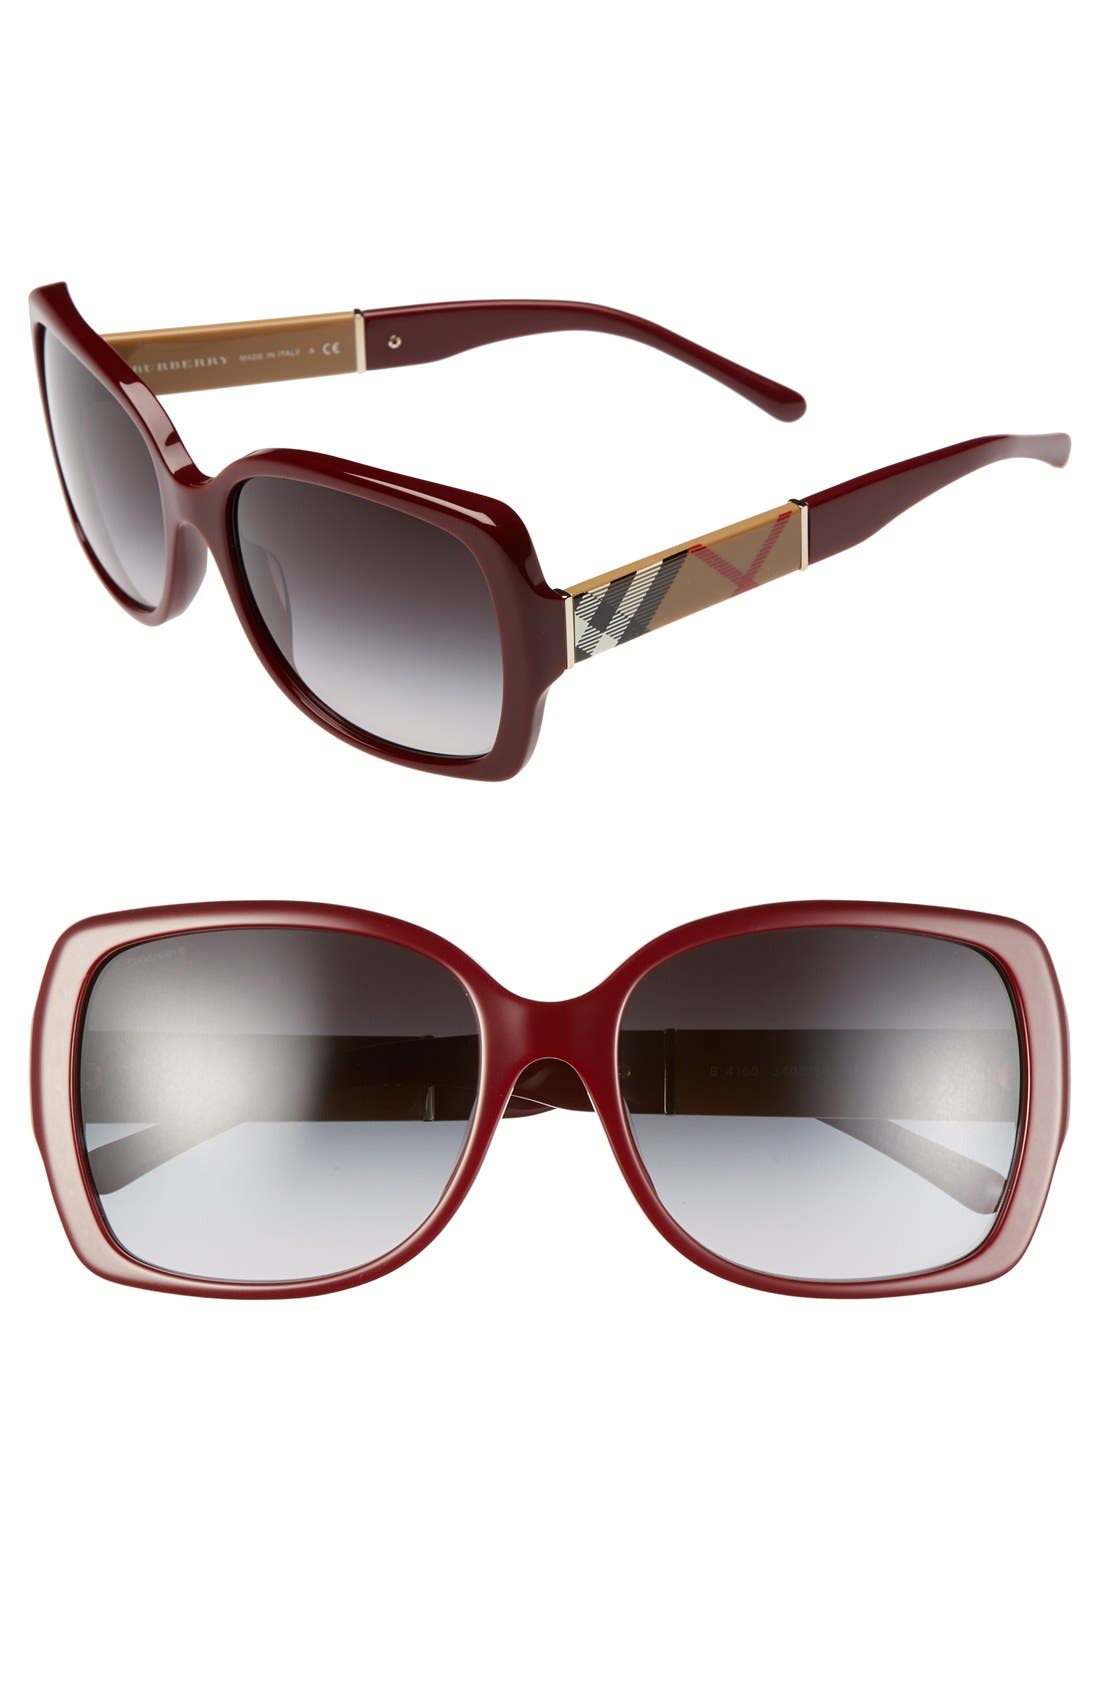 Burberry 58mm Square Sunglasses